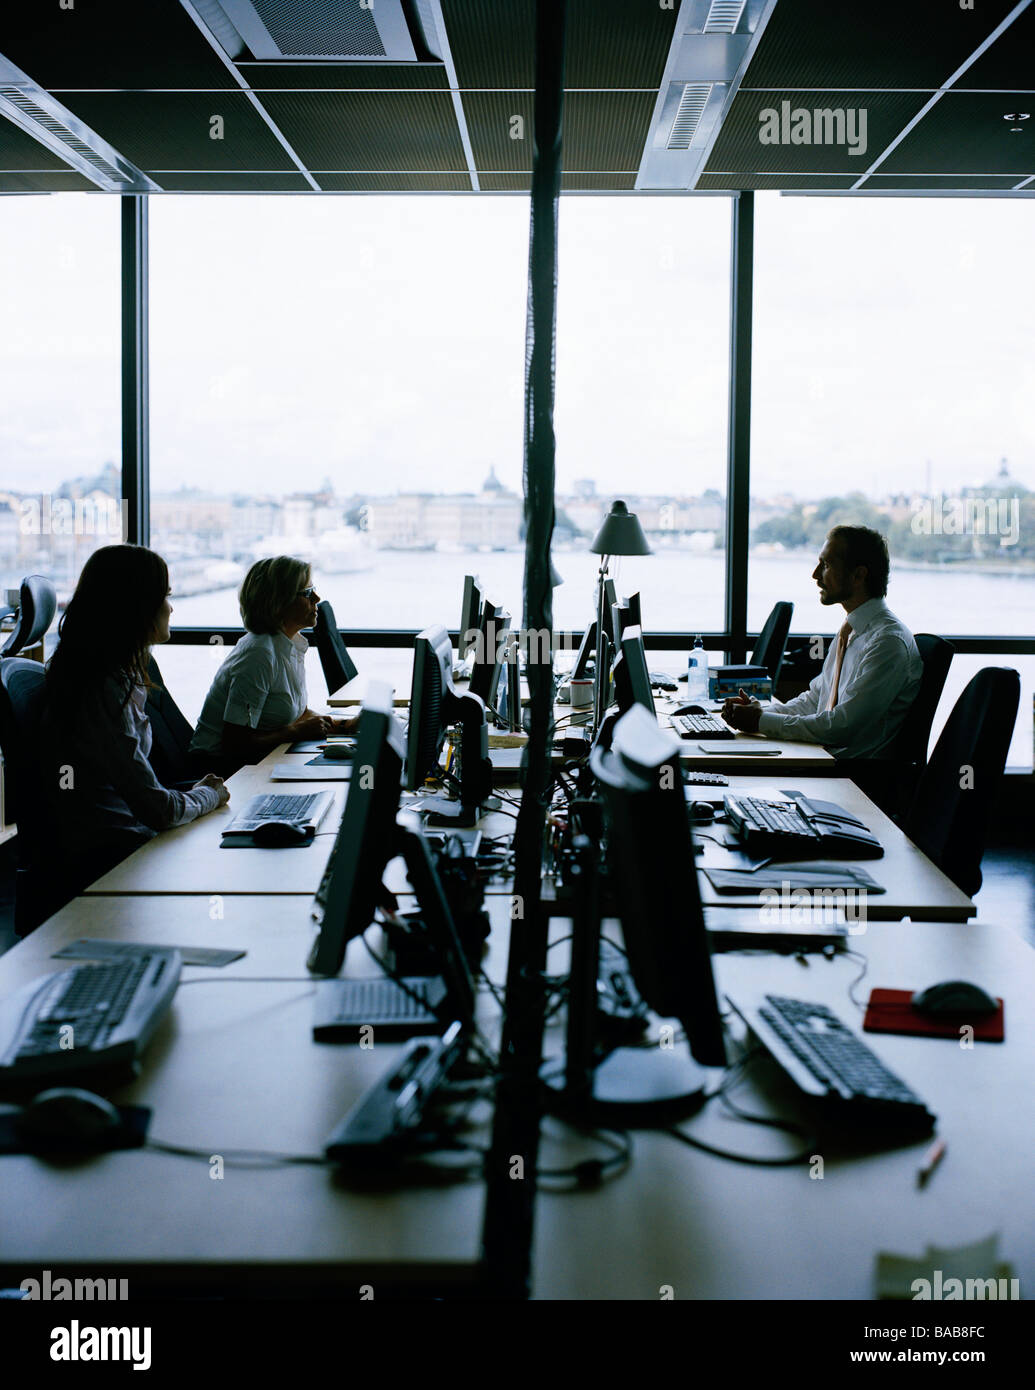 People in an office Sweden. - Stock Image